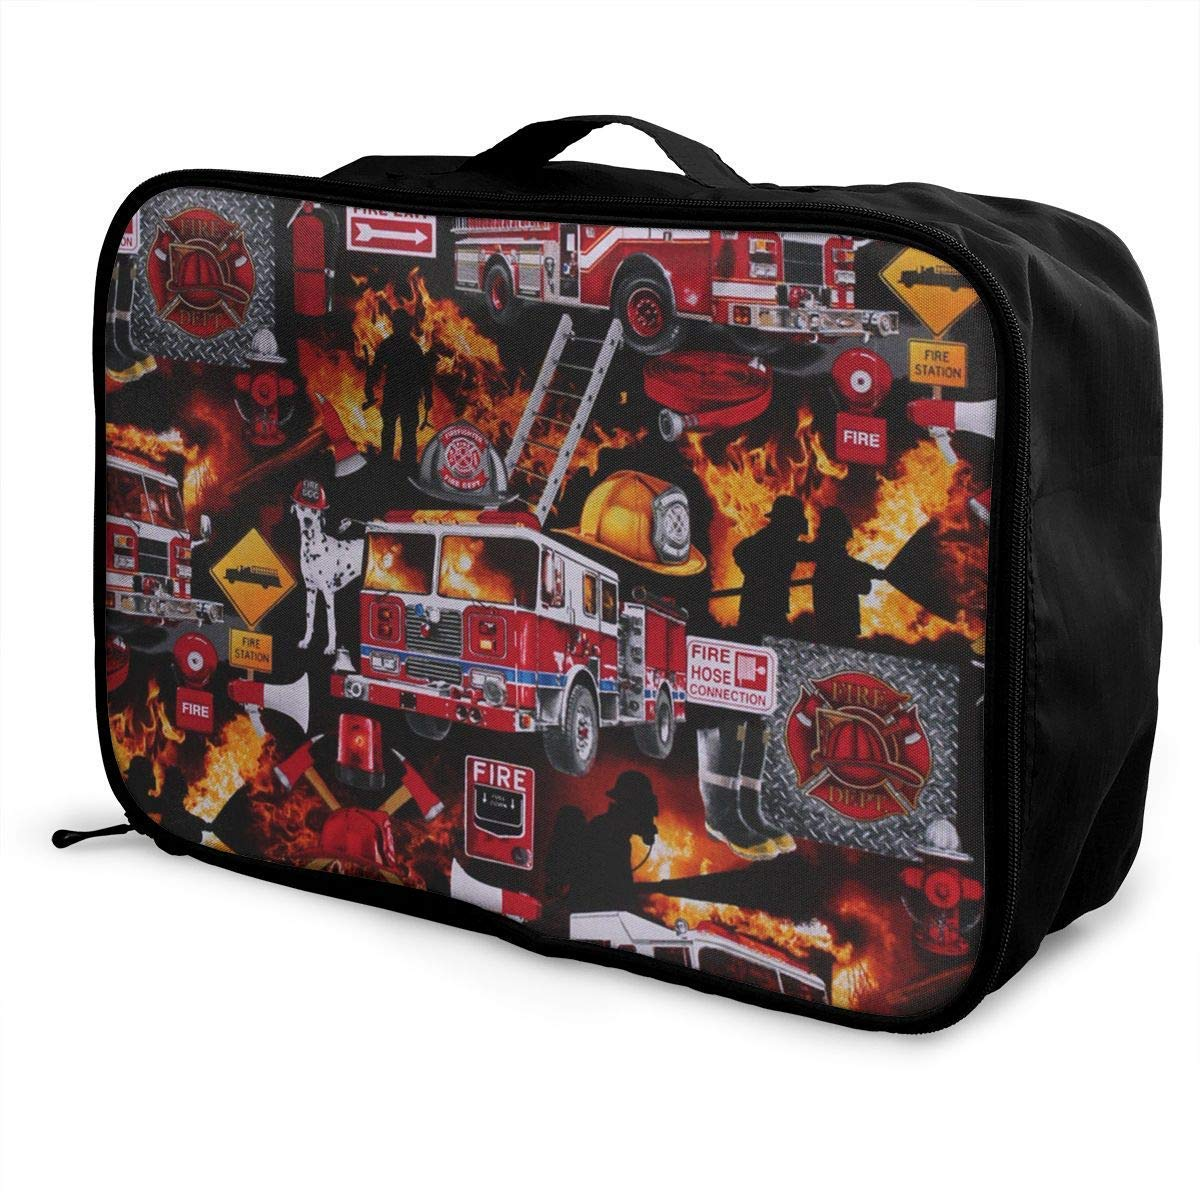 JTRVW Luggage Bags for Travel Portable Luggage Duffel Bag Firefighter Equipment Dalmatian Dog Fire Travel Bags Carry-on in Trolley Handle